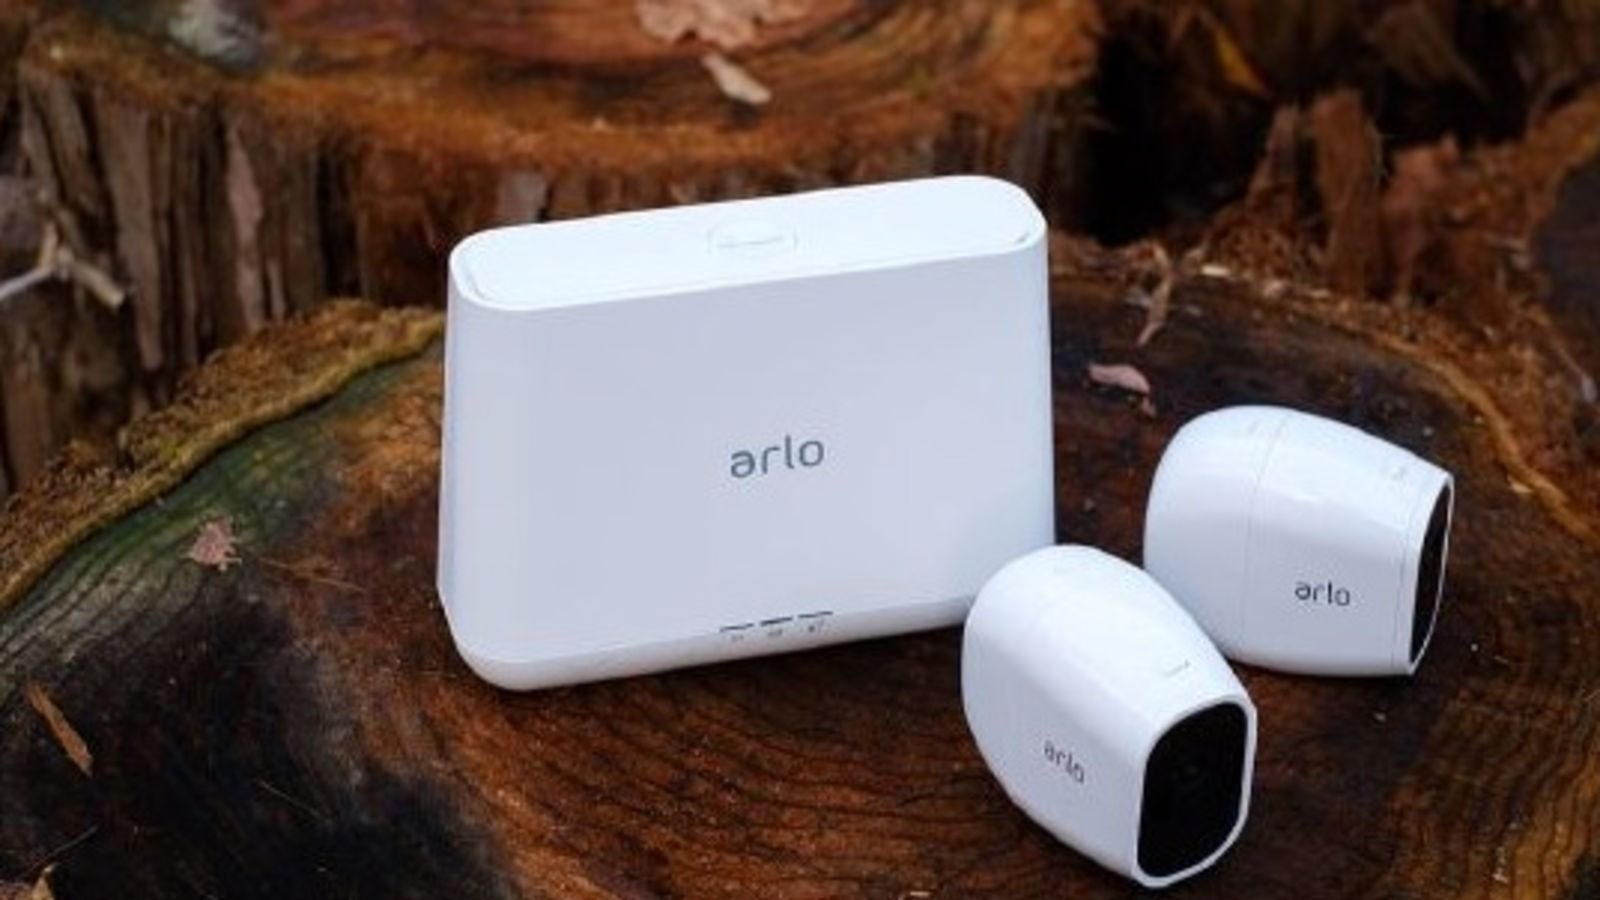 If Don T Know How To Interpret Arlo S Battery Level Icons And Notifications Best Home Security Netgear Usb Gadgets